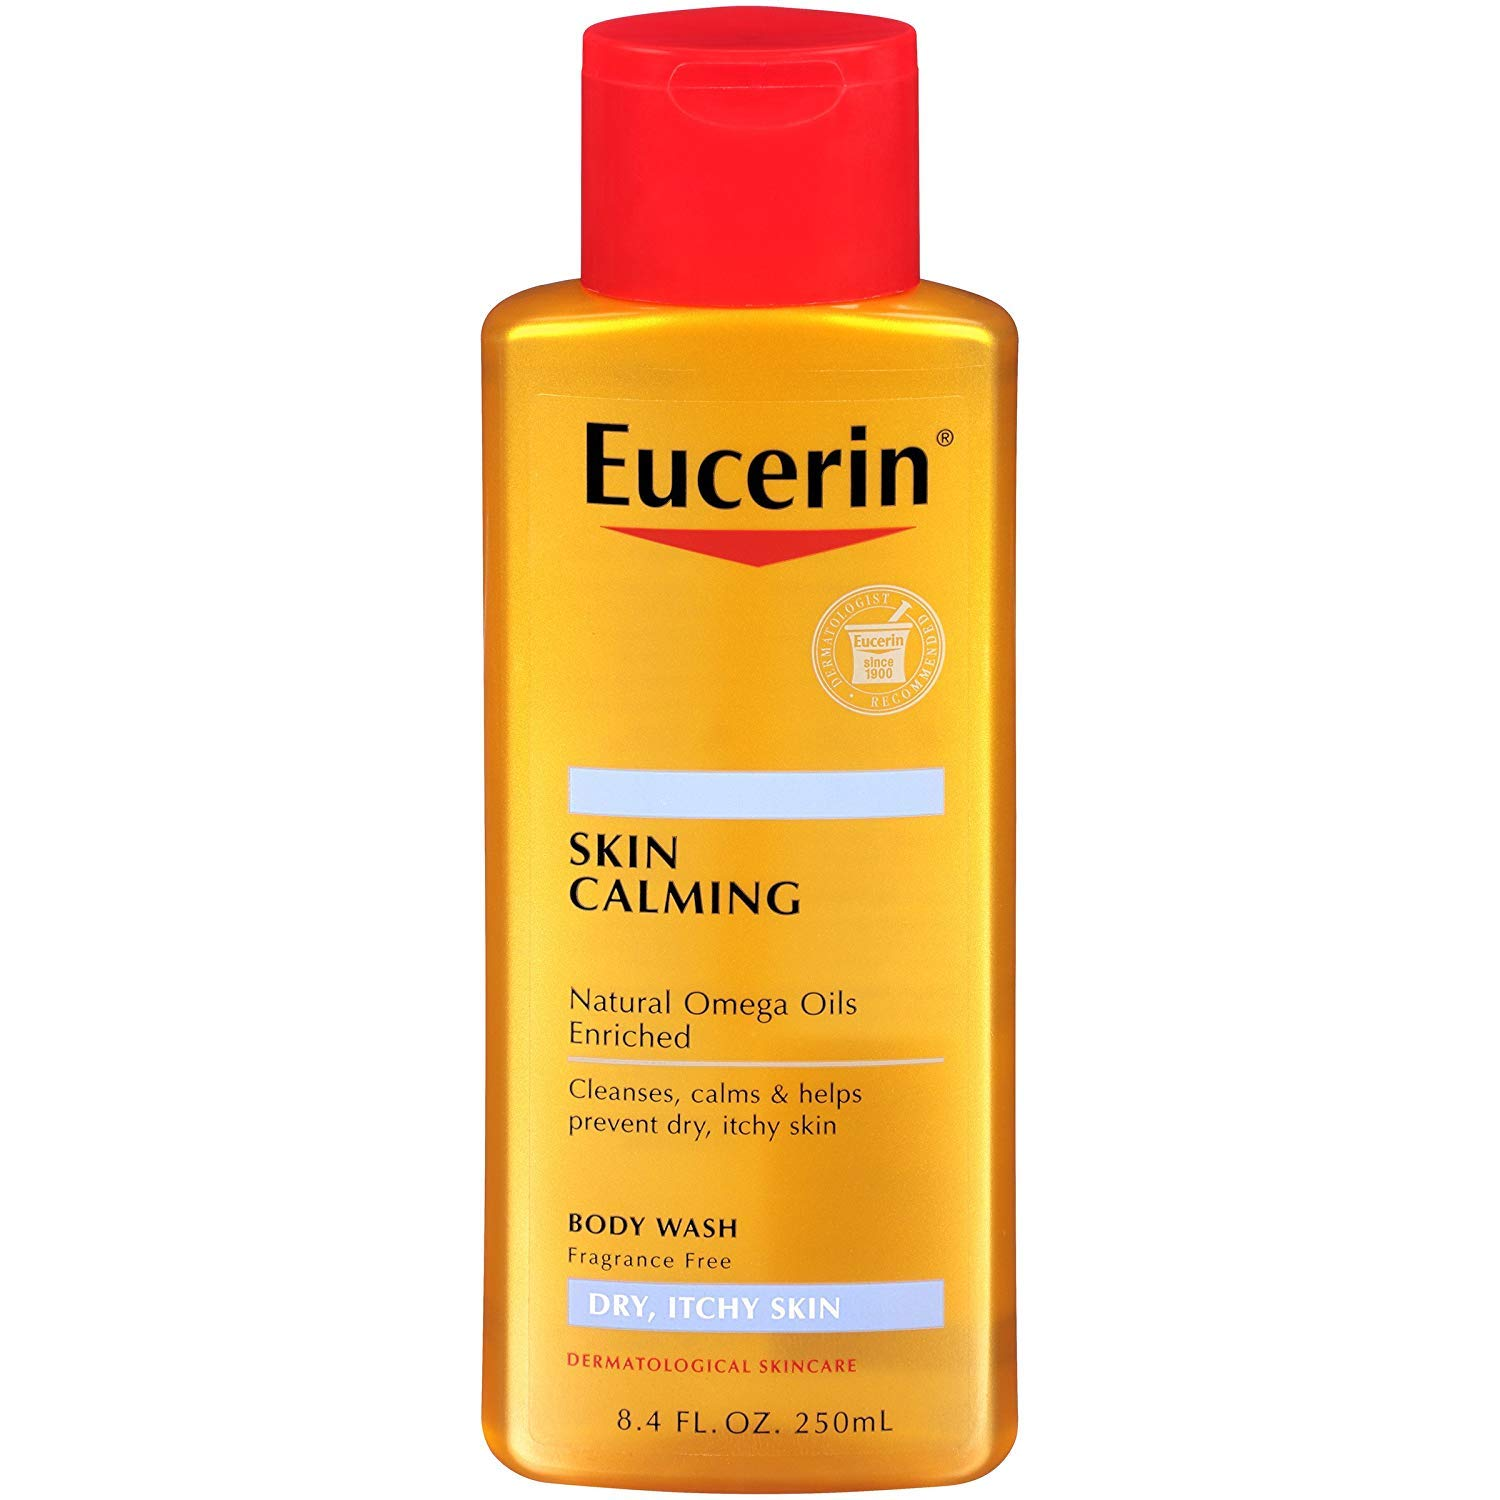 Eucerin Skin Calming Dry Itchy Body 5 8.40 of Pack oz Wash 67% Free shipping / New OFF fixed price